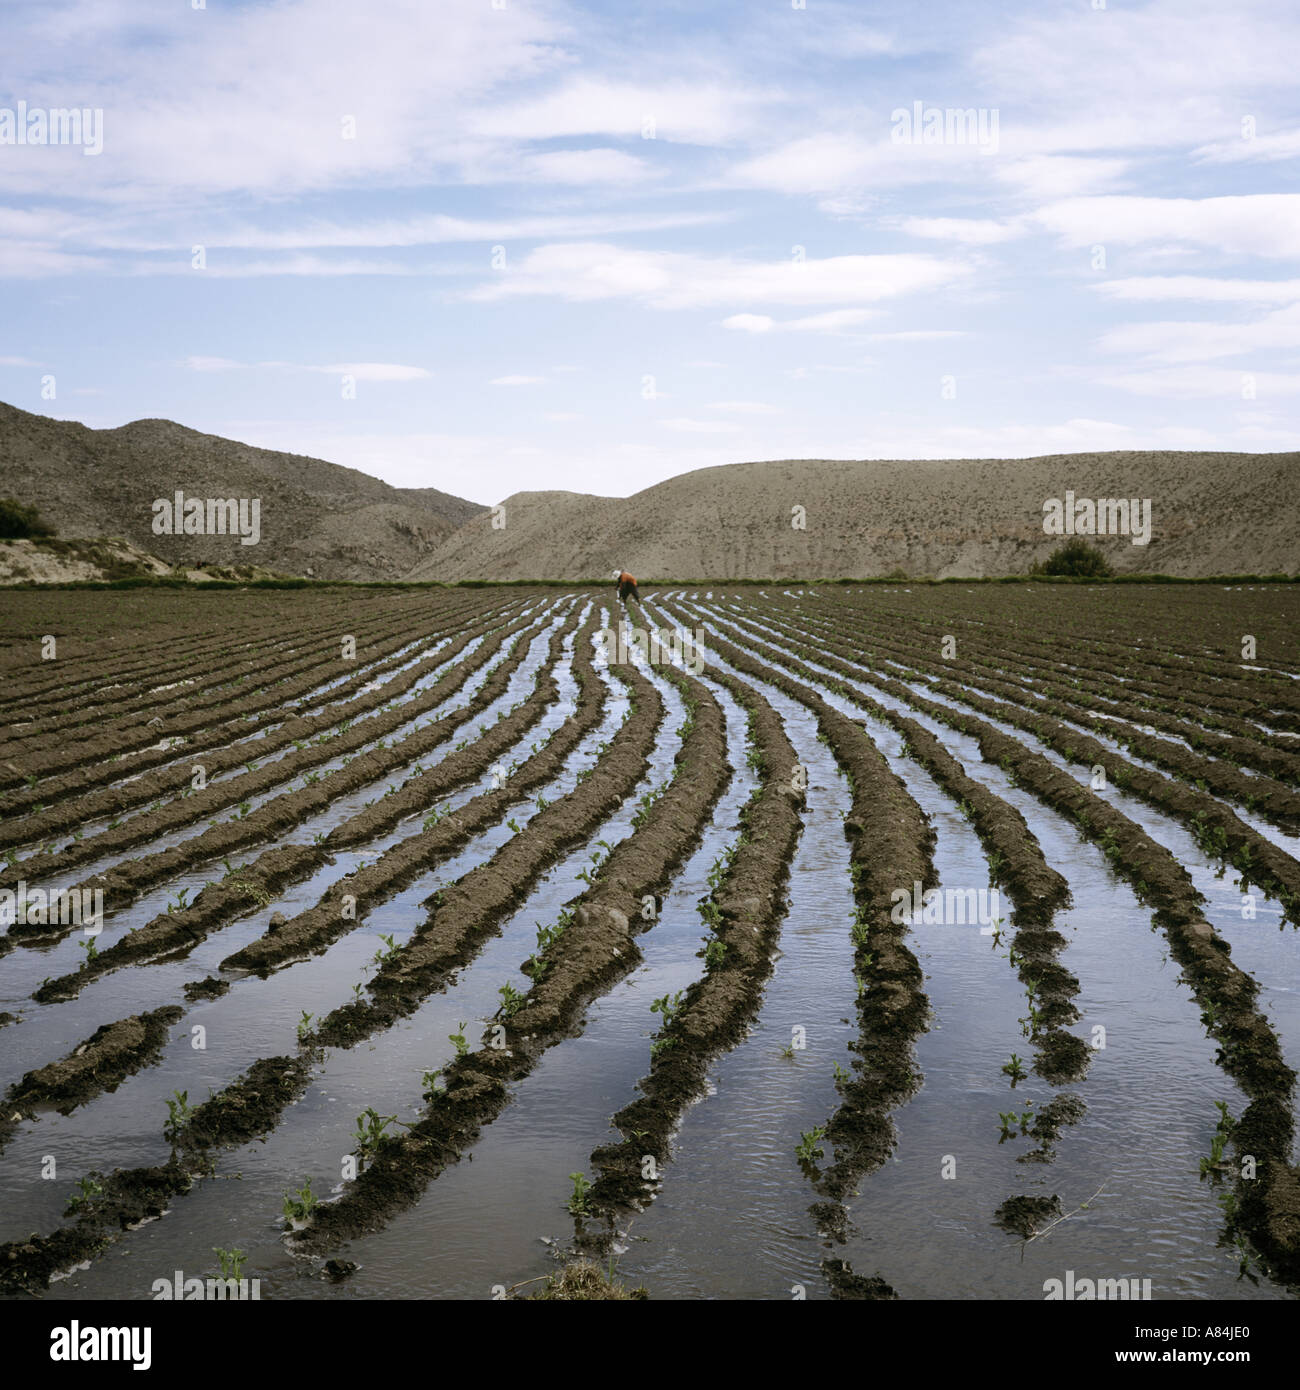 Irrigated fields being planted - Stock Image